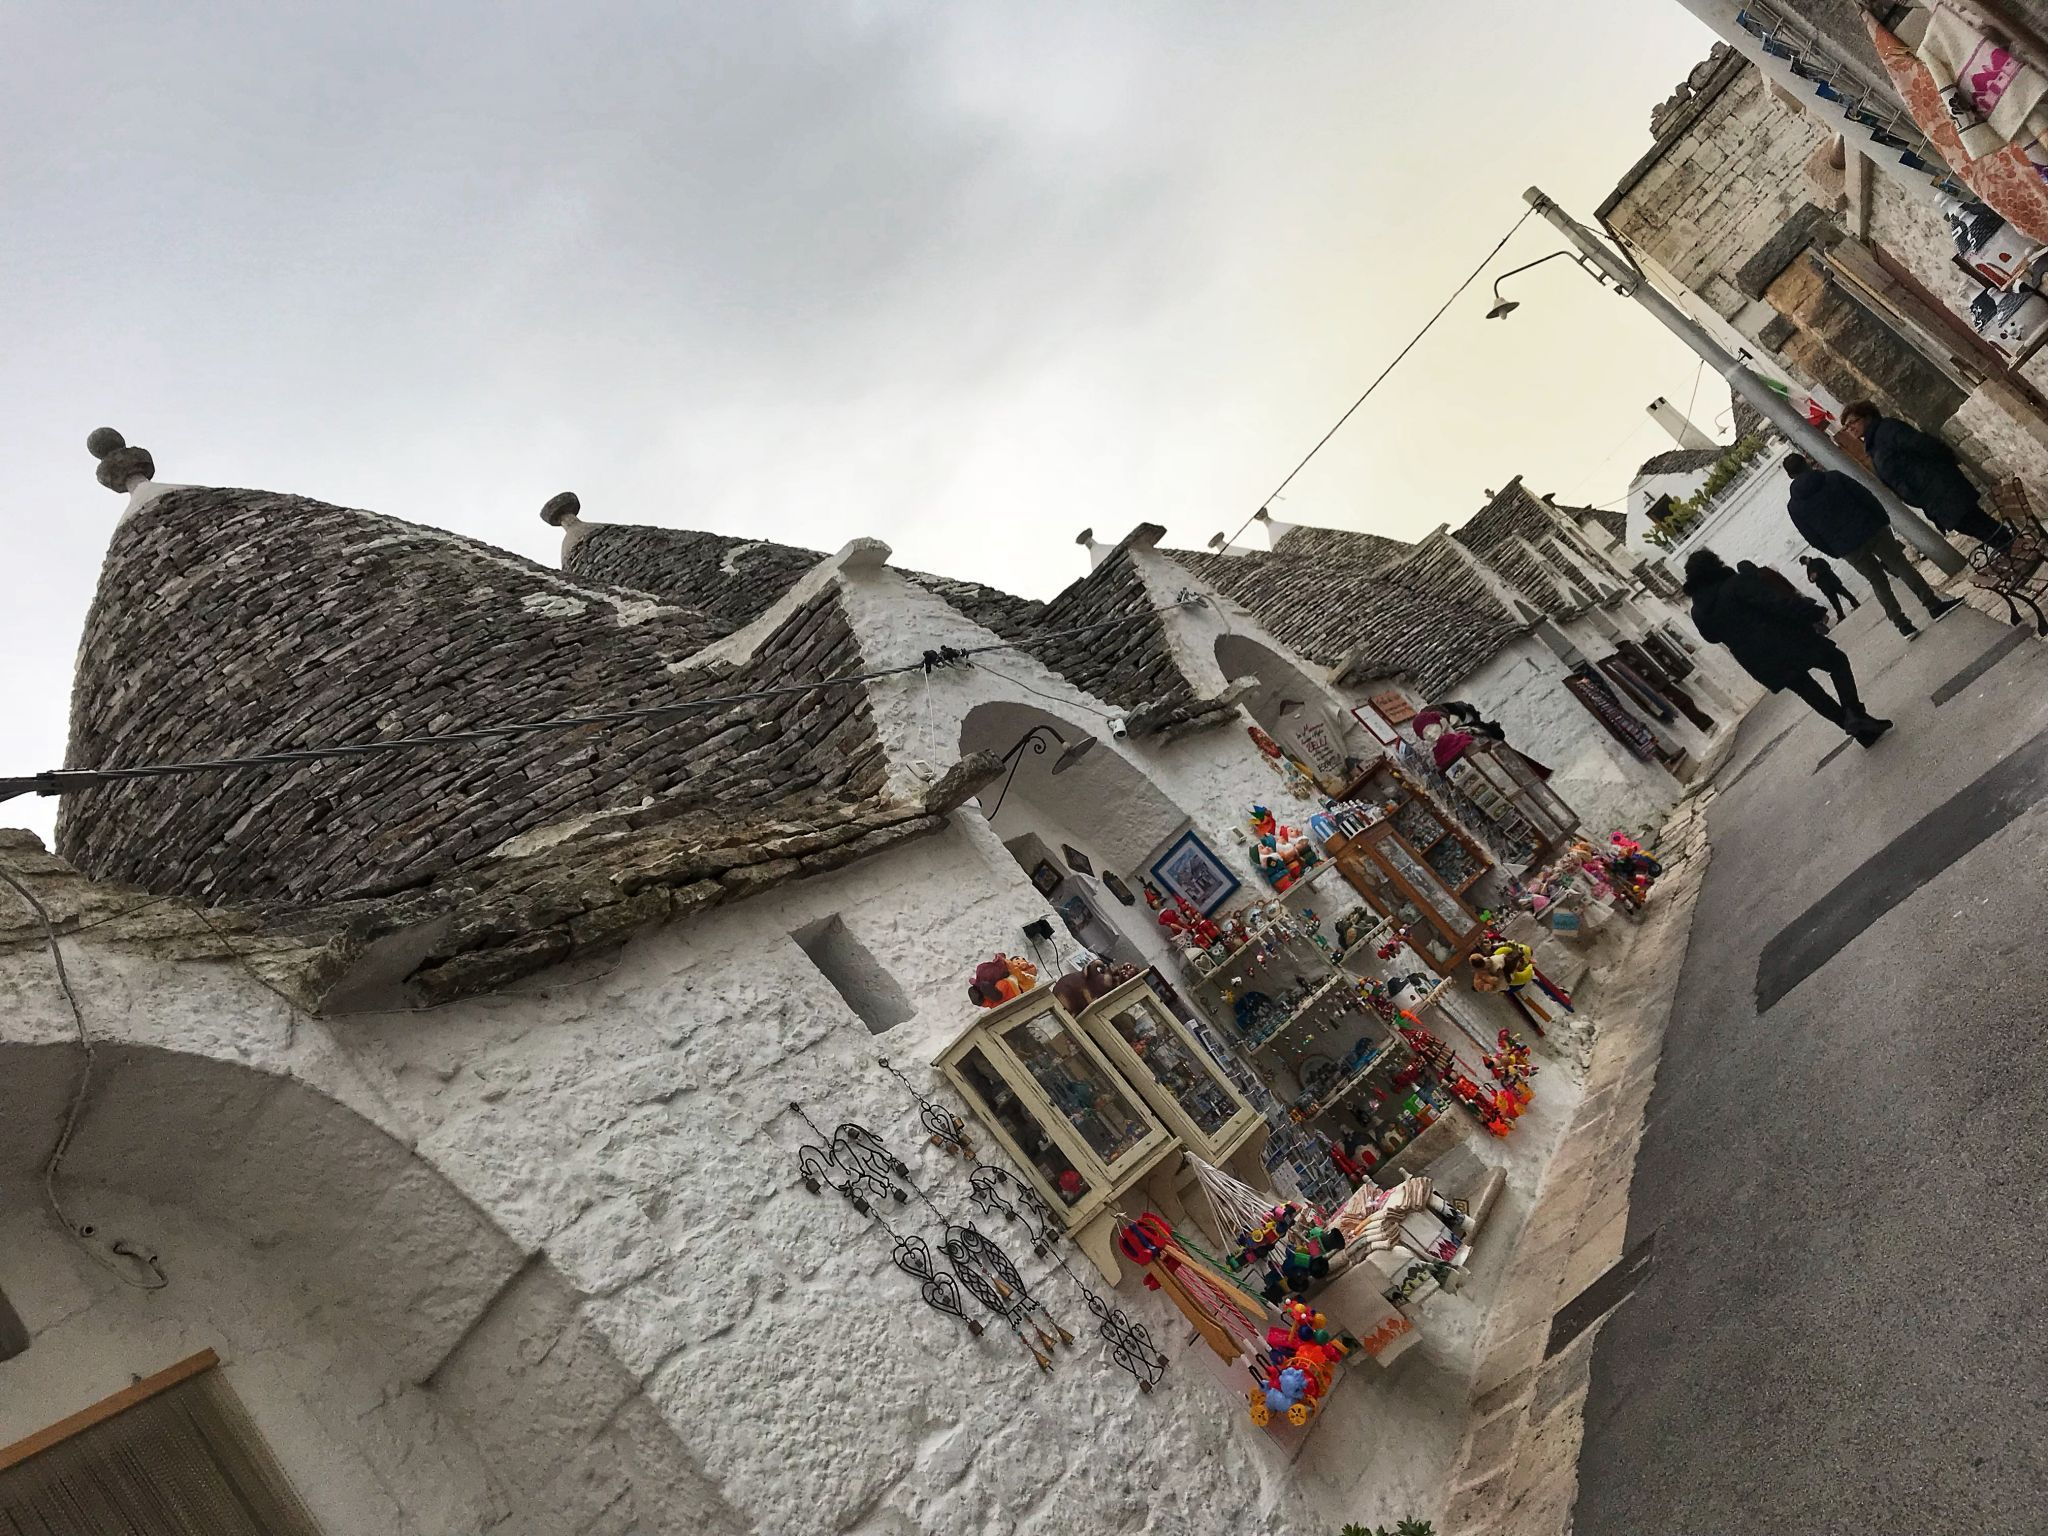 Souvenir shops in Alberobello